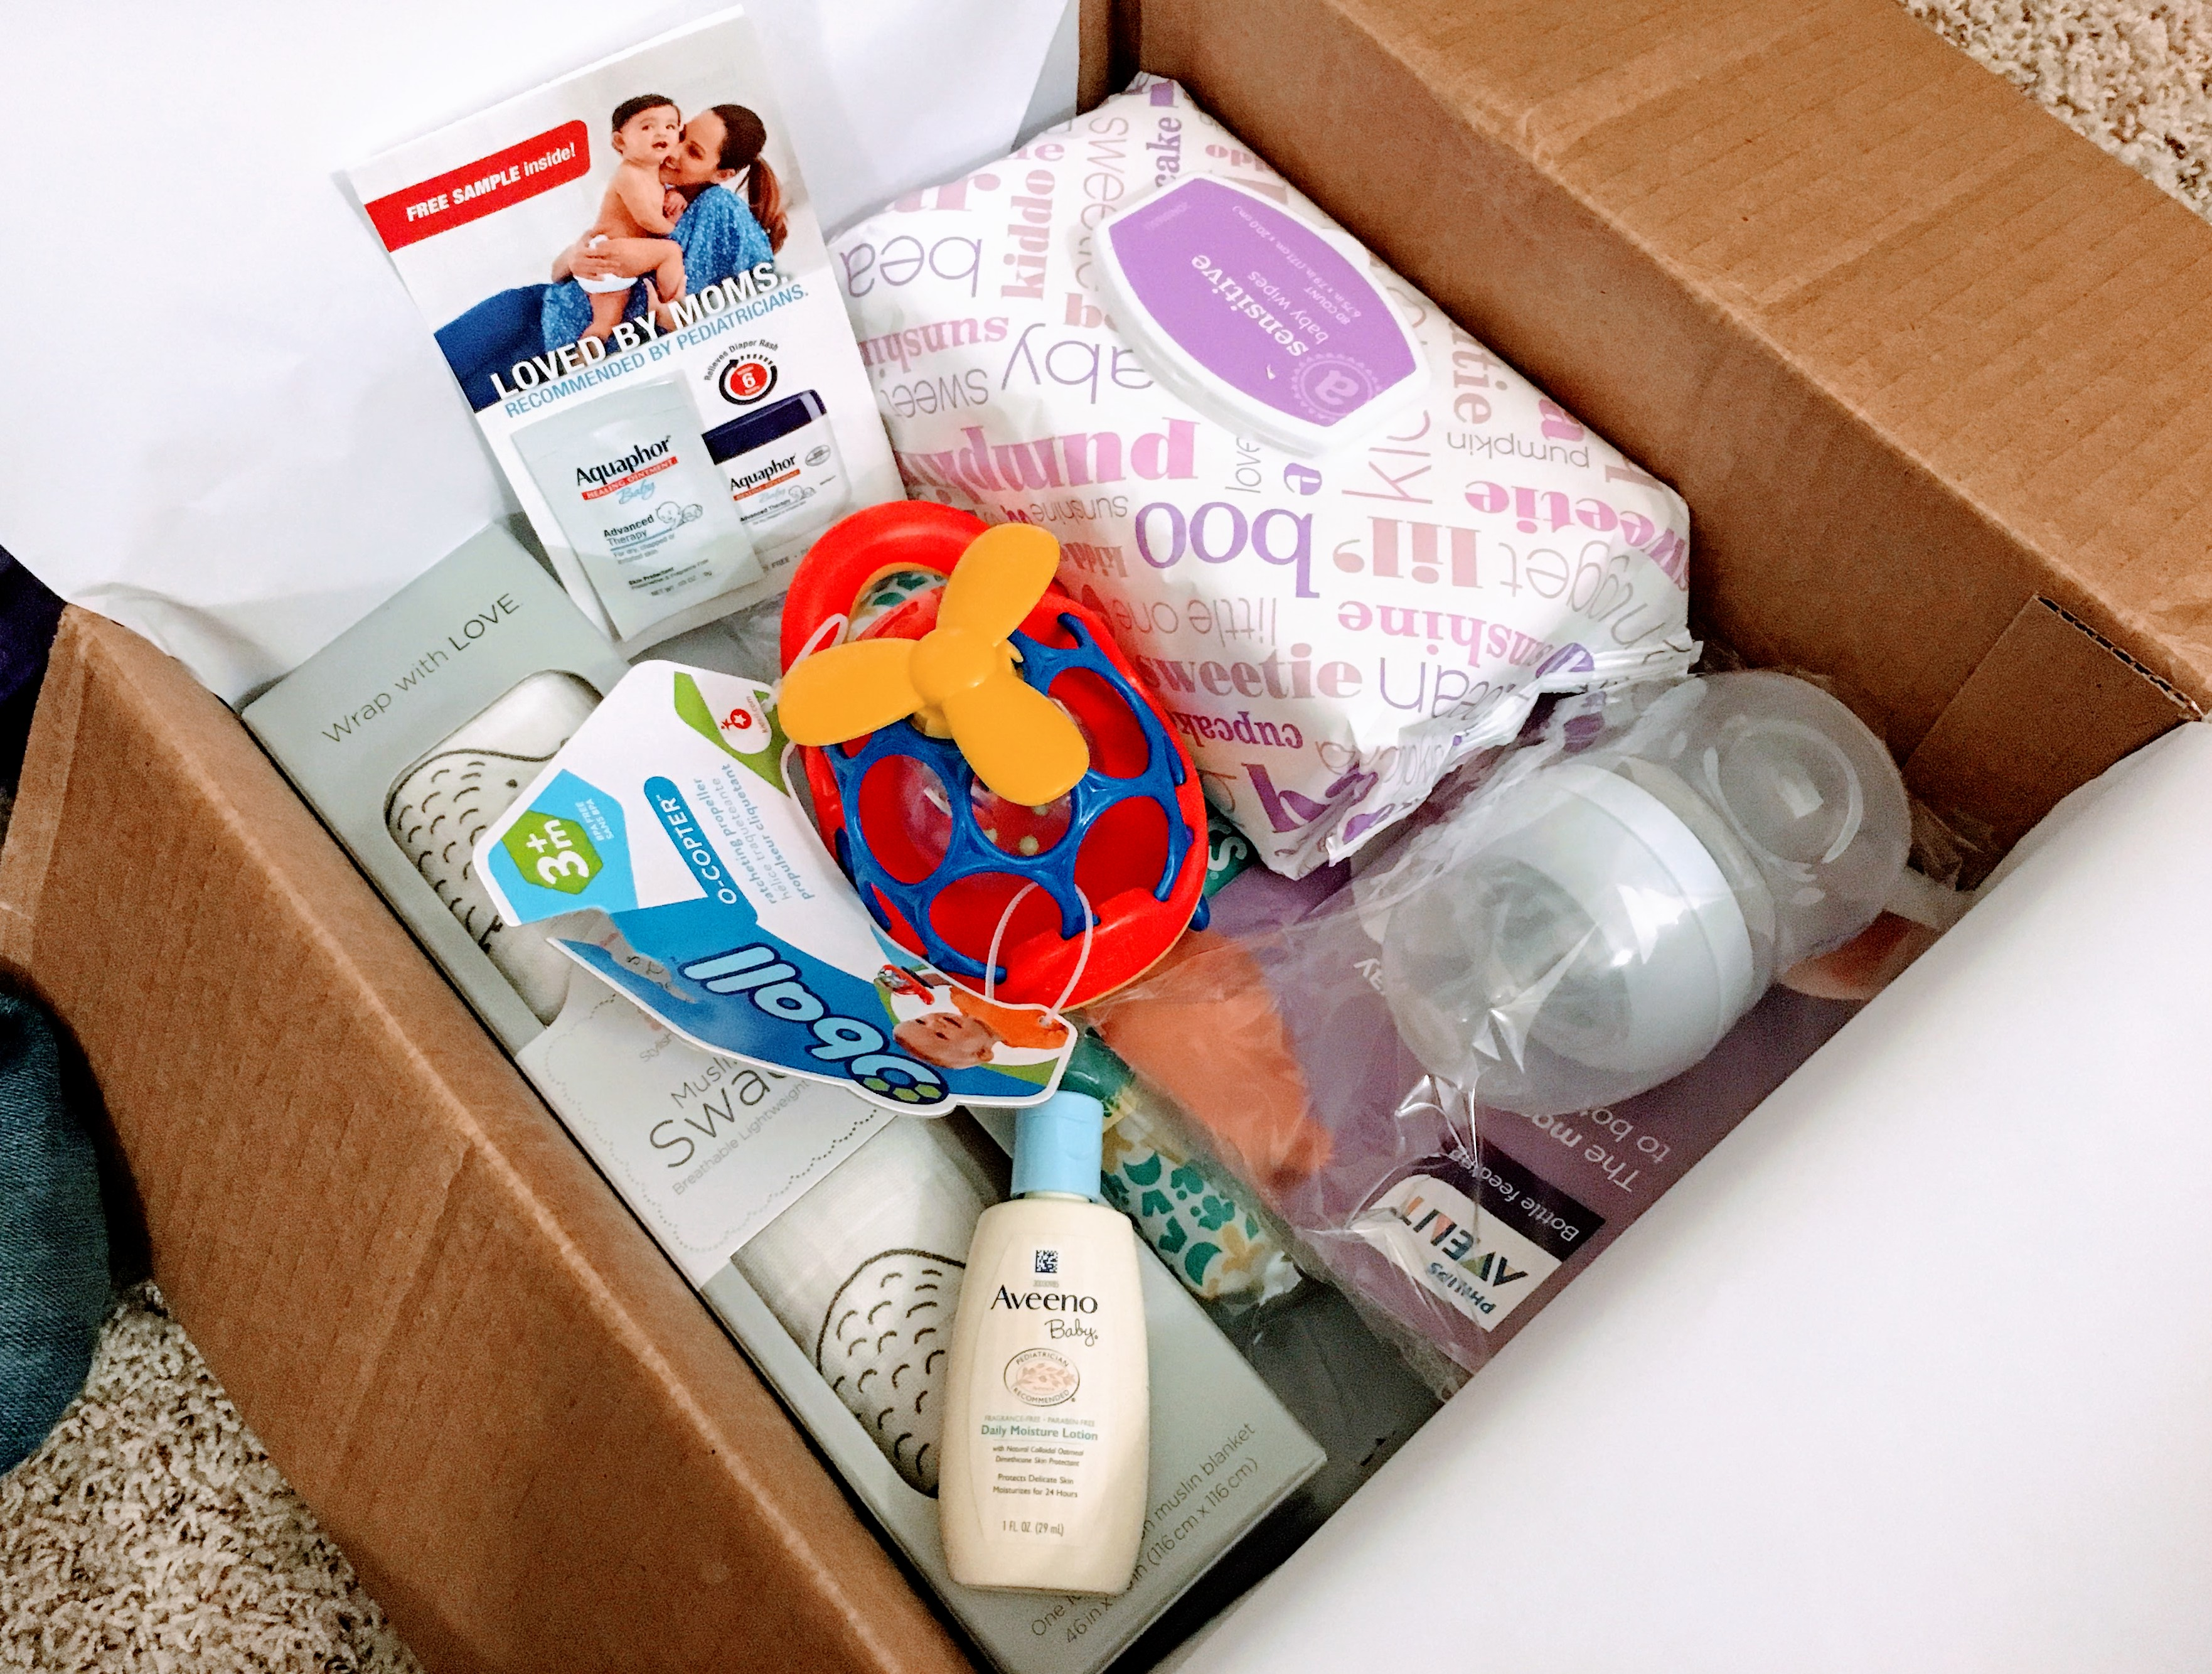 Examplary Baby Amazon Baby Box Free Uk Amazon Baby Box July 2018 Free Amazon Baby Box Scroll Down To Find Out How To Get Things Going To Do Differently baby Amazon Baby Box